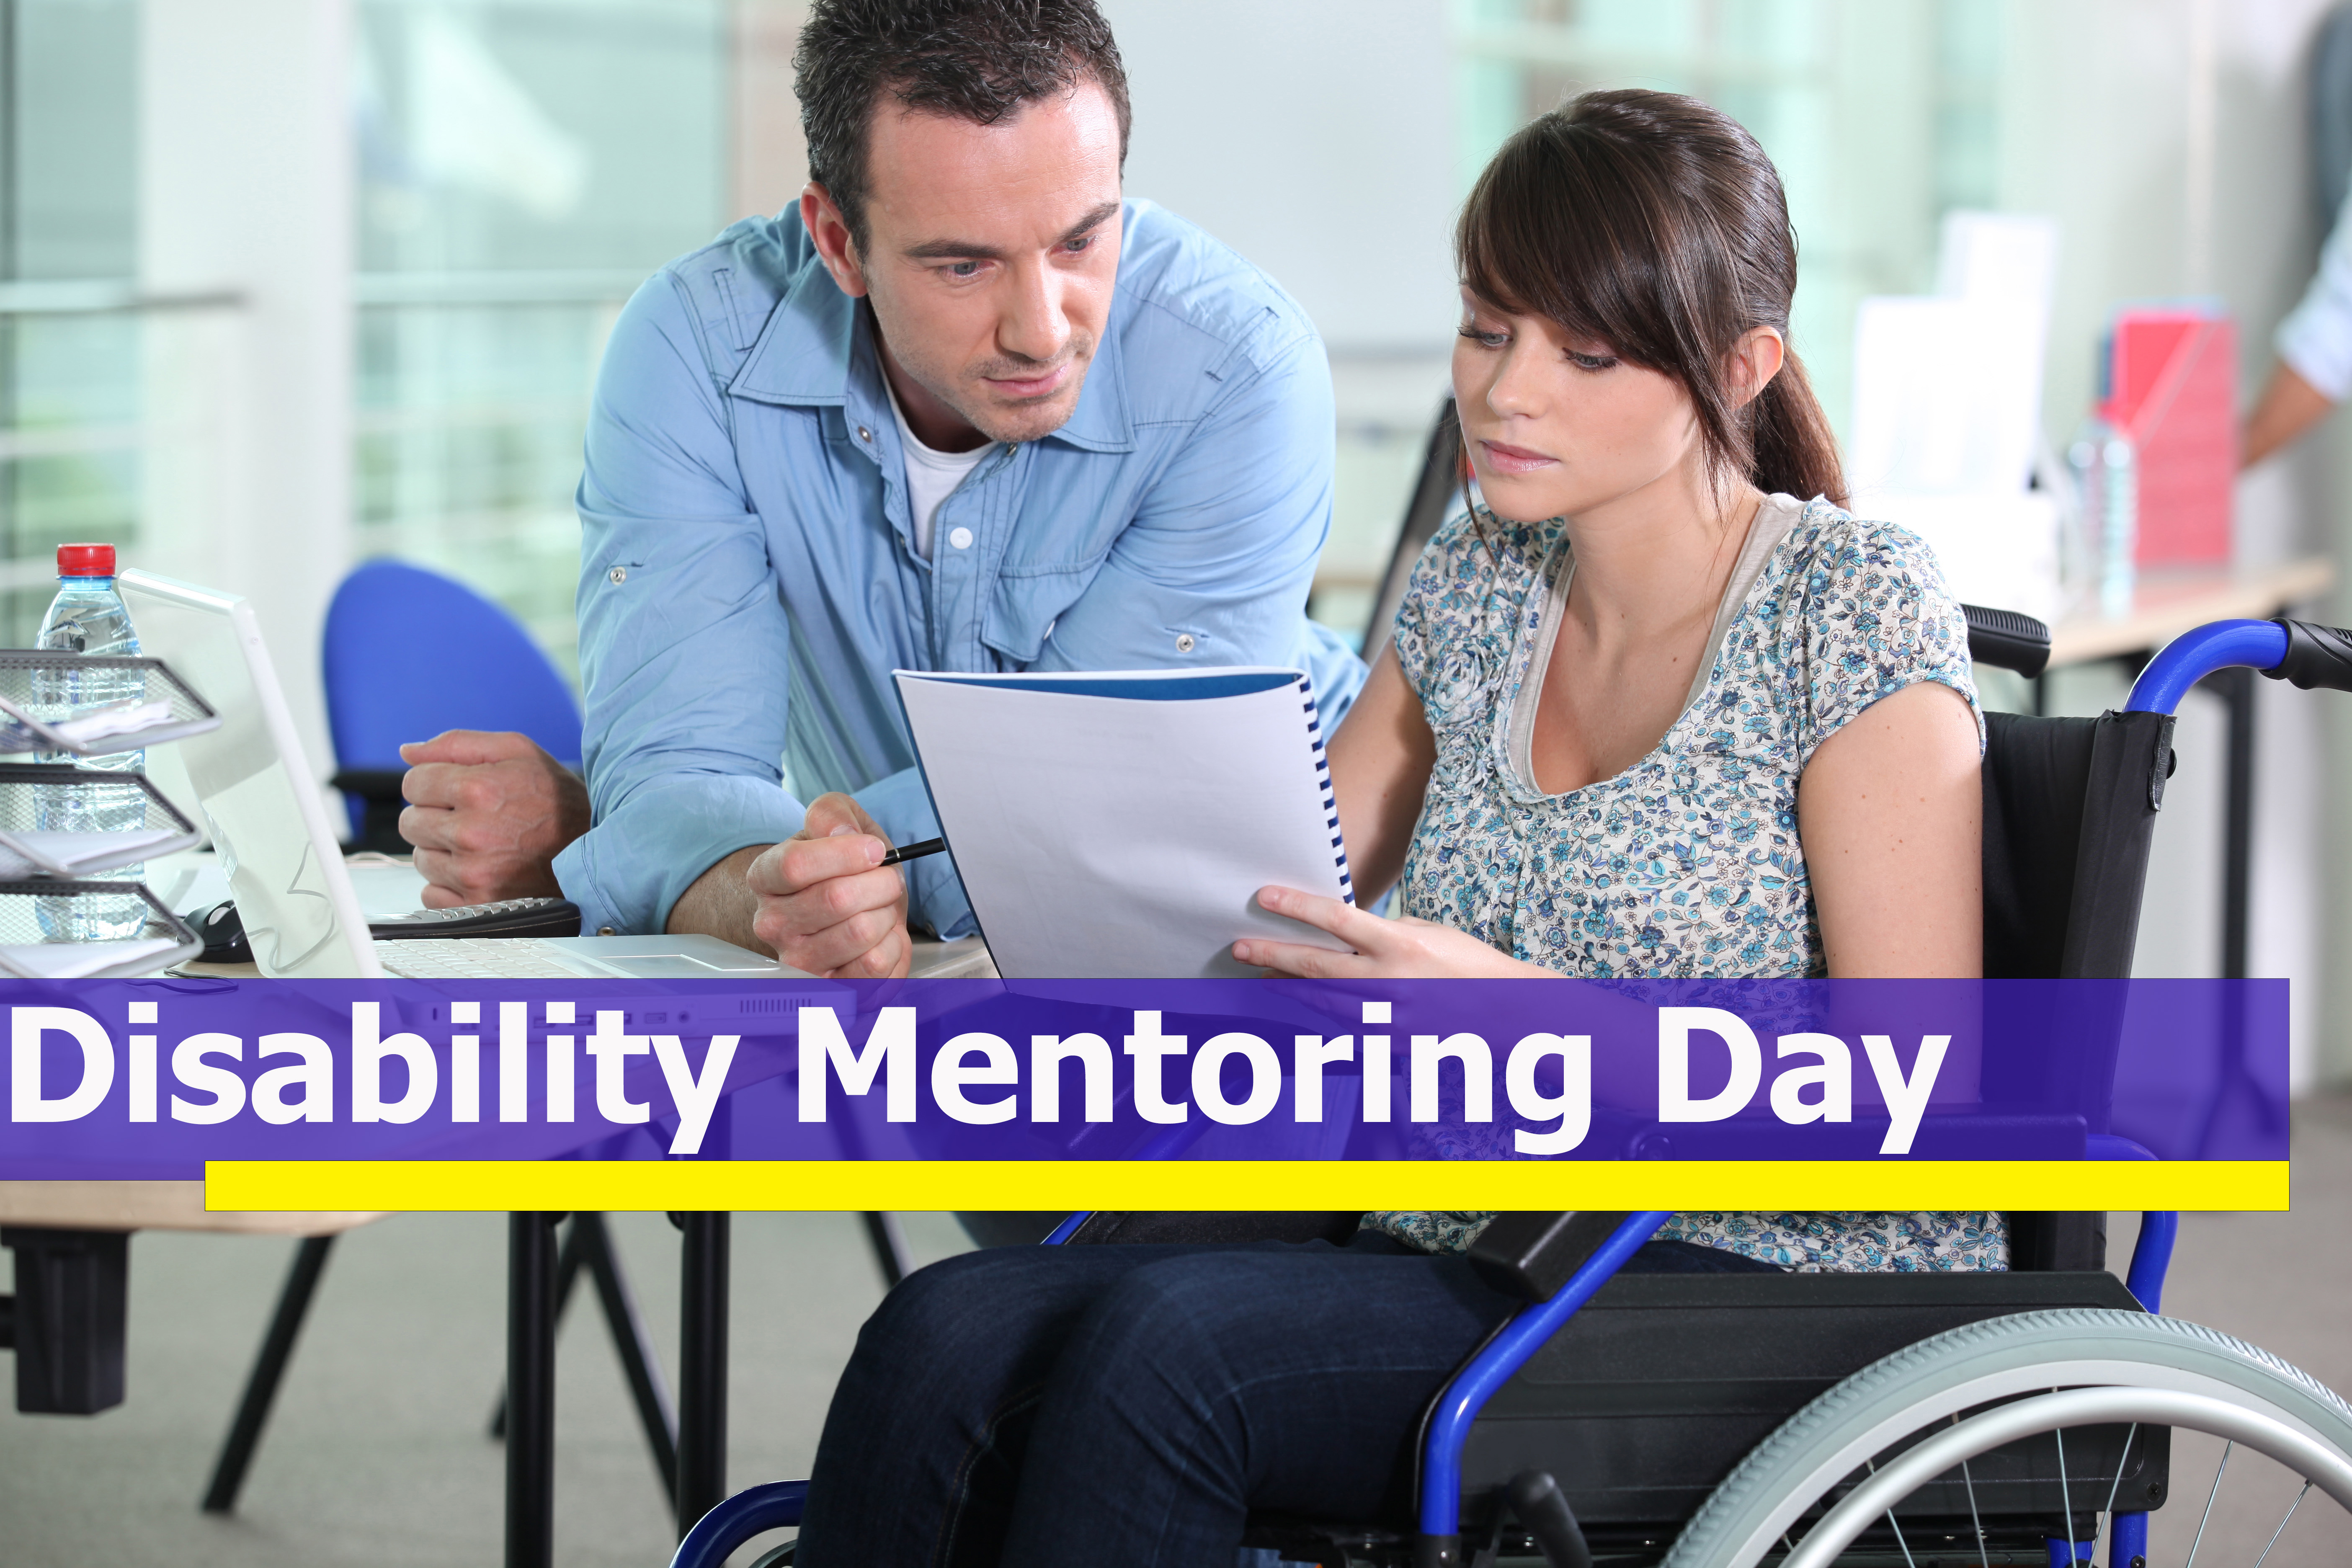 The Arizona Youth Leadership Forum is proud to present Disability Mentoring Day 2016!